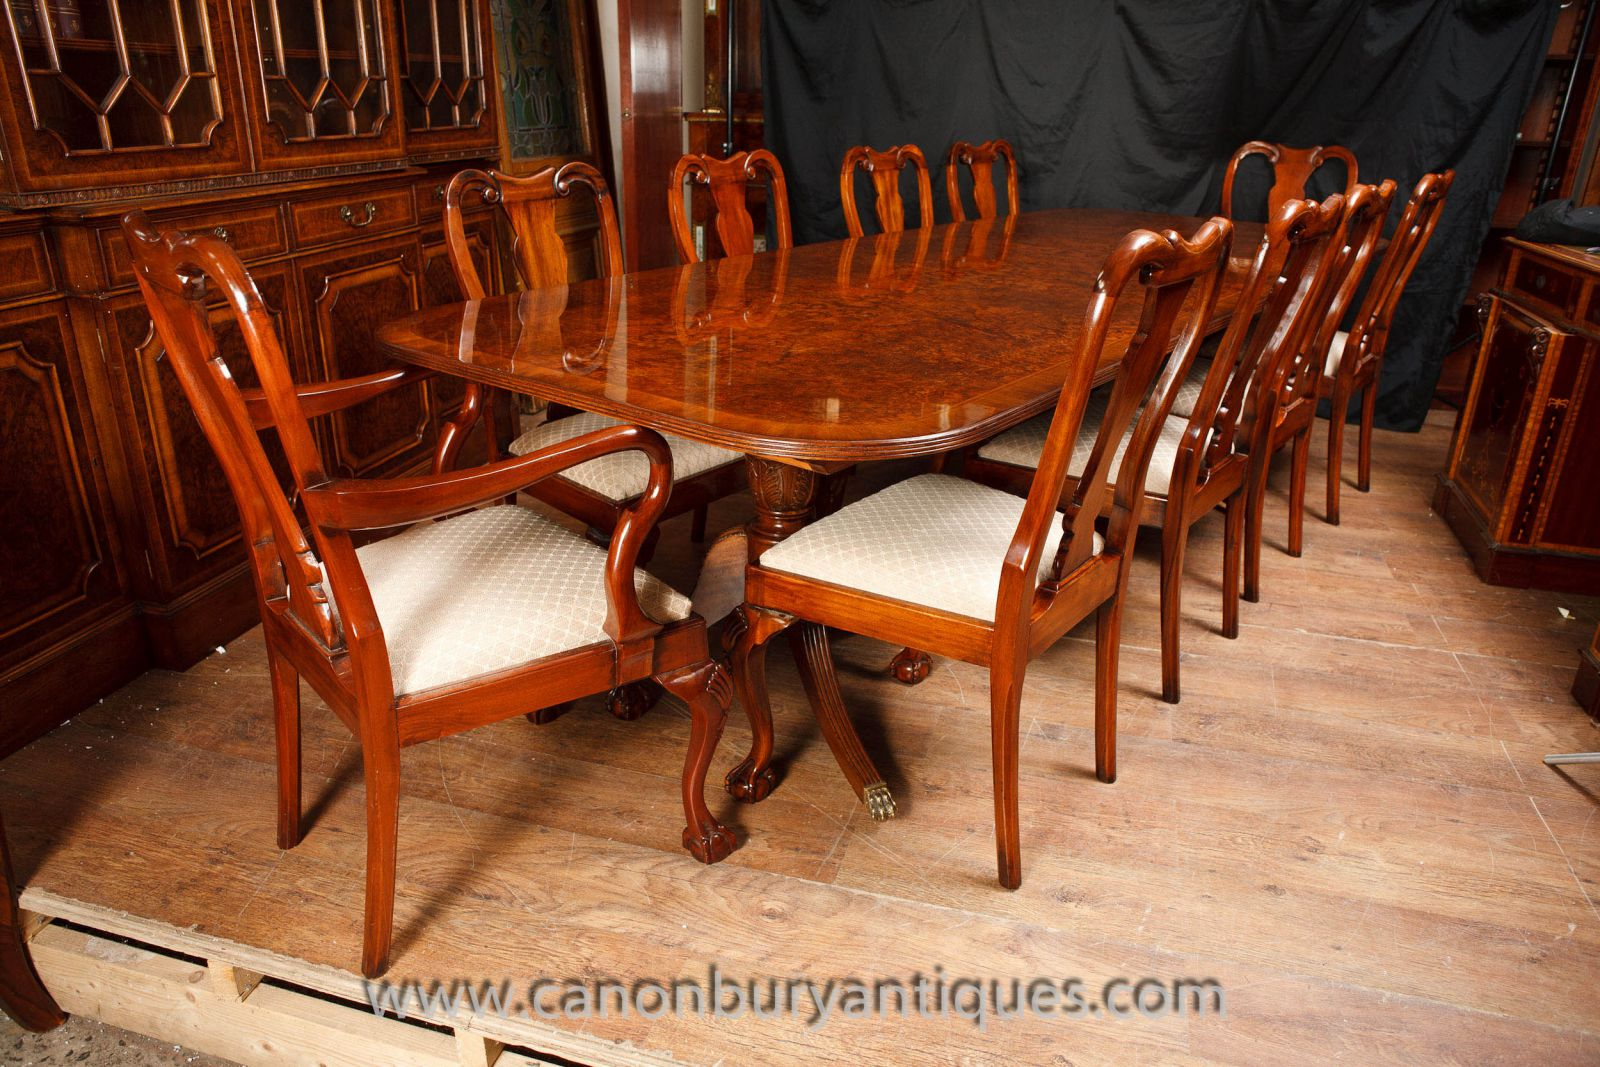 Walnut Regency dining set with Chippendale chairs